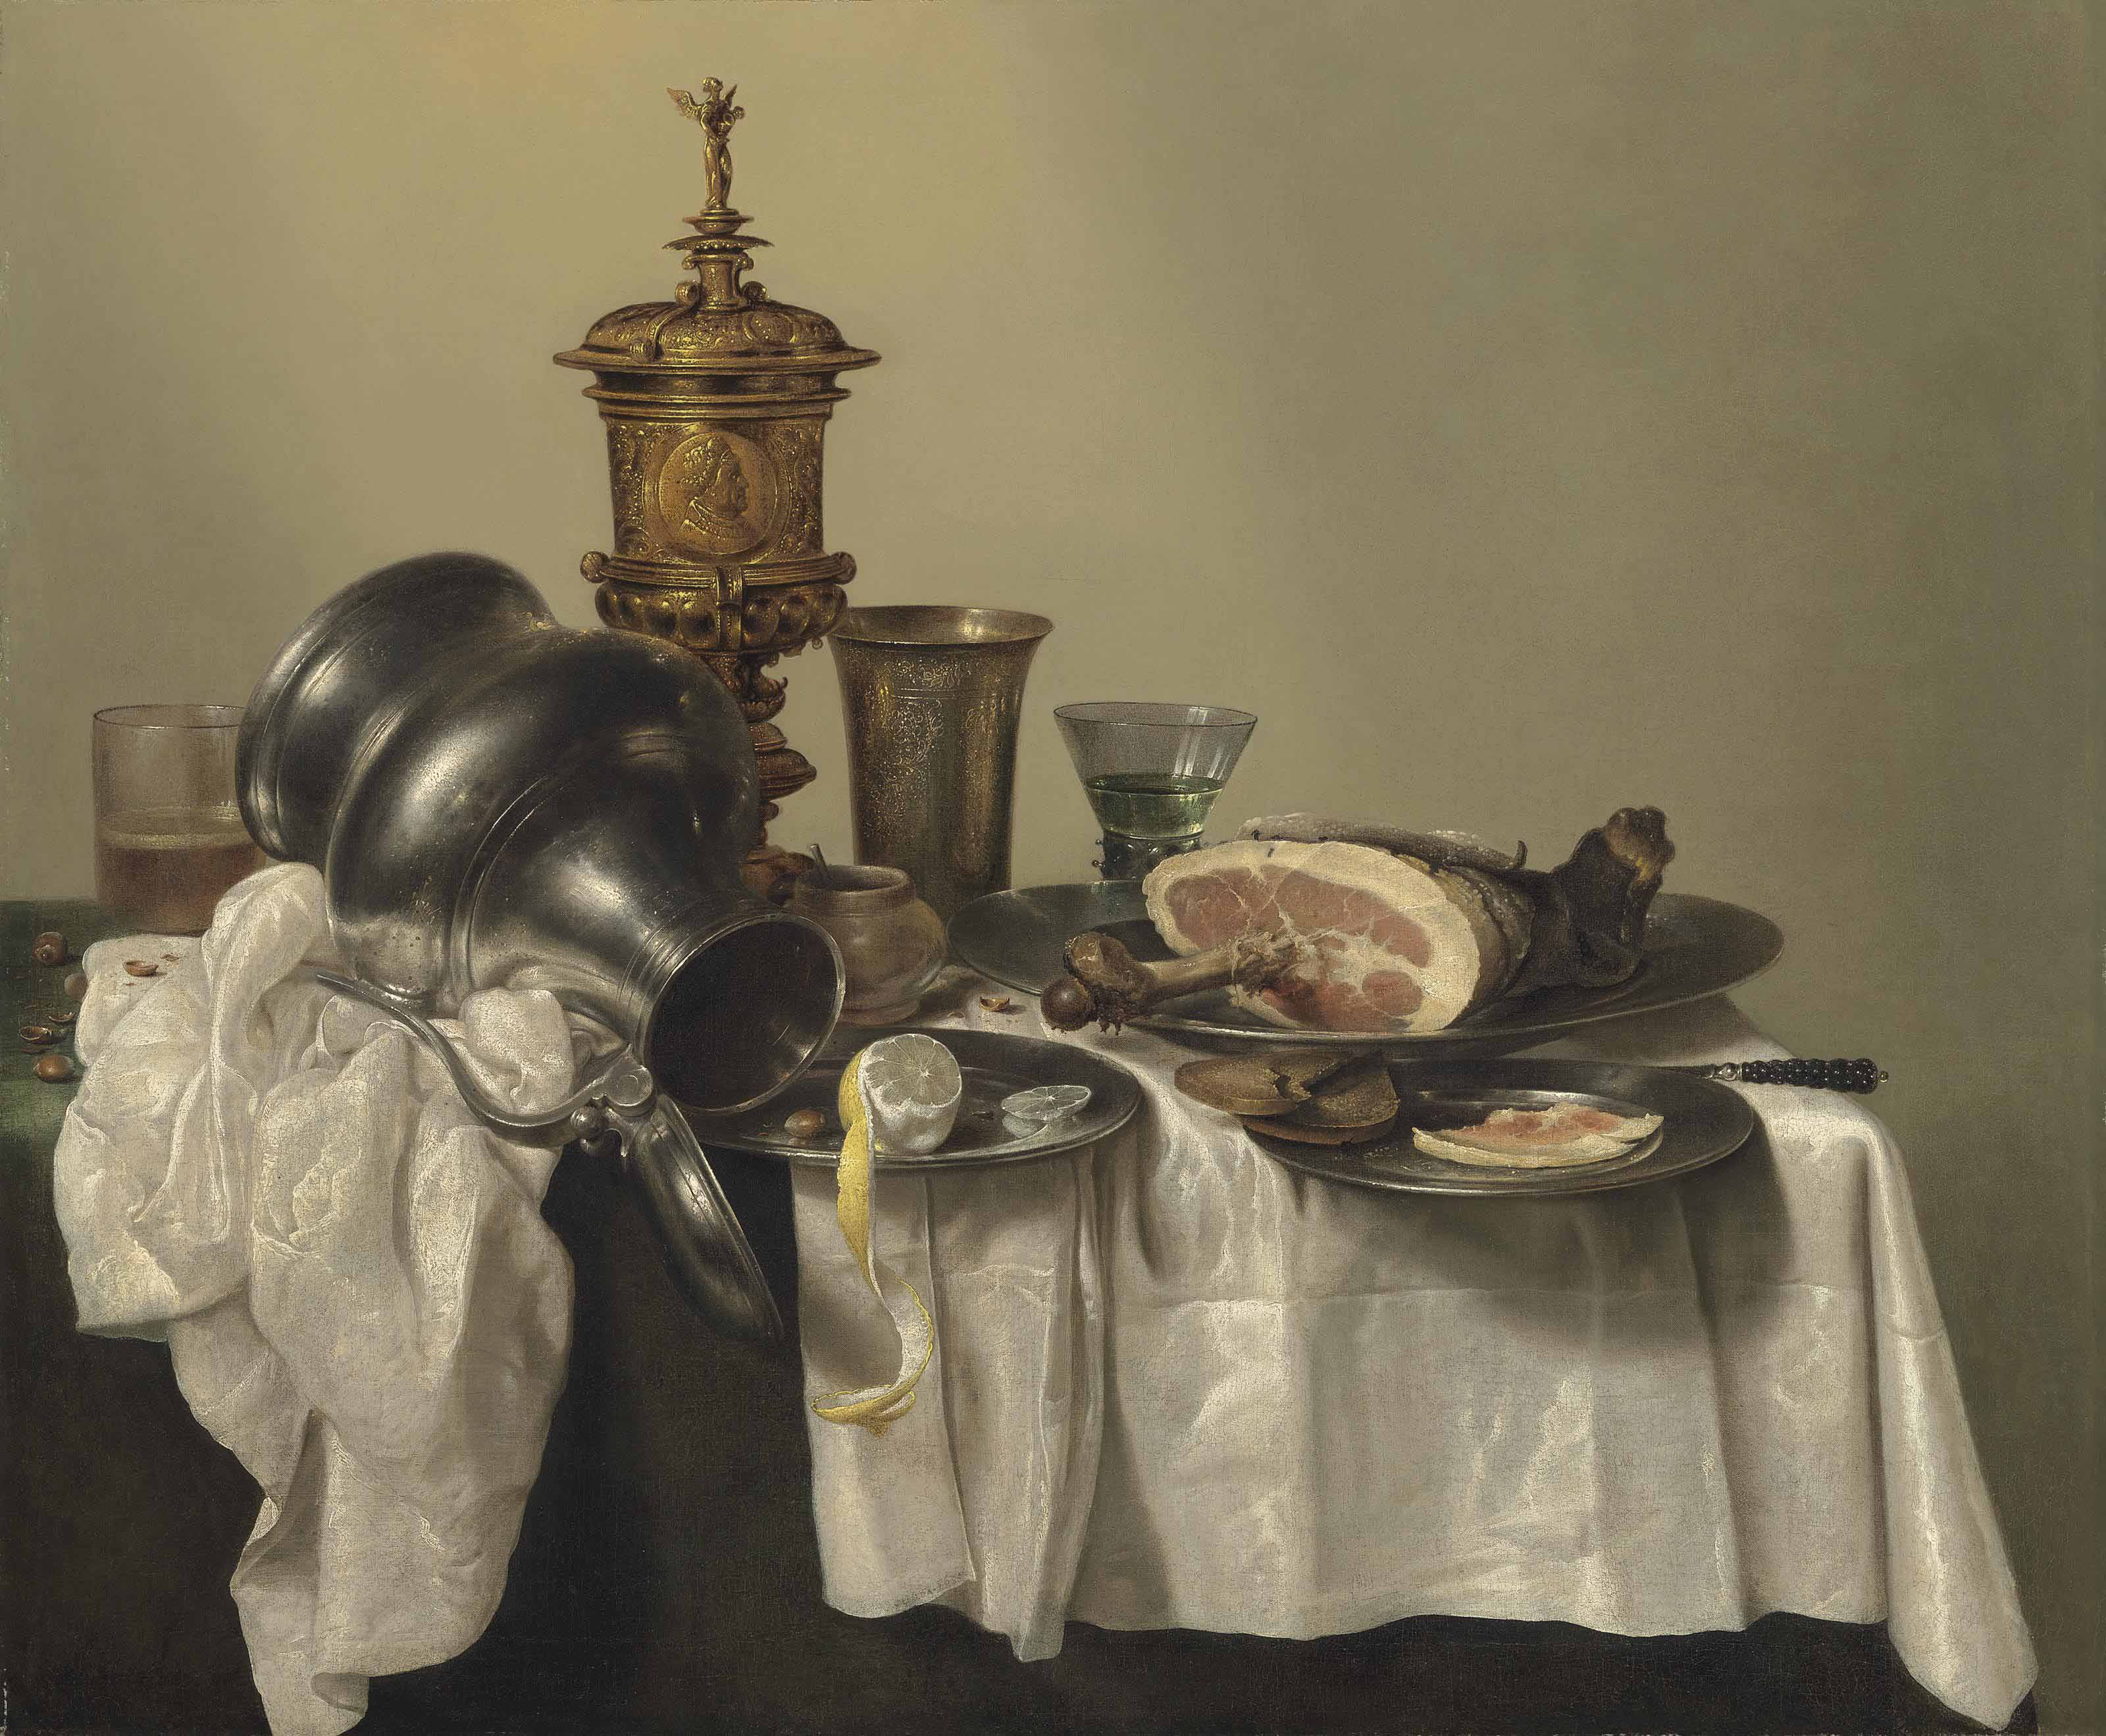 A leg of ham, a partly-peeled lemon and slices of bread on pewter platters, a berkemeier, an upturned tankard, a silver-gilt cup and cover, and other vessels on a partly-draped table